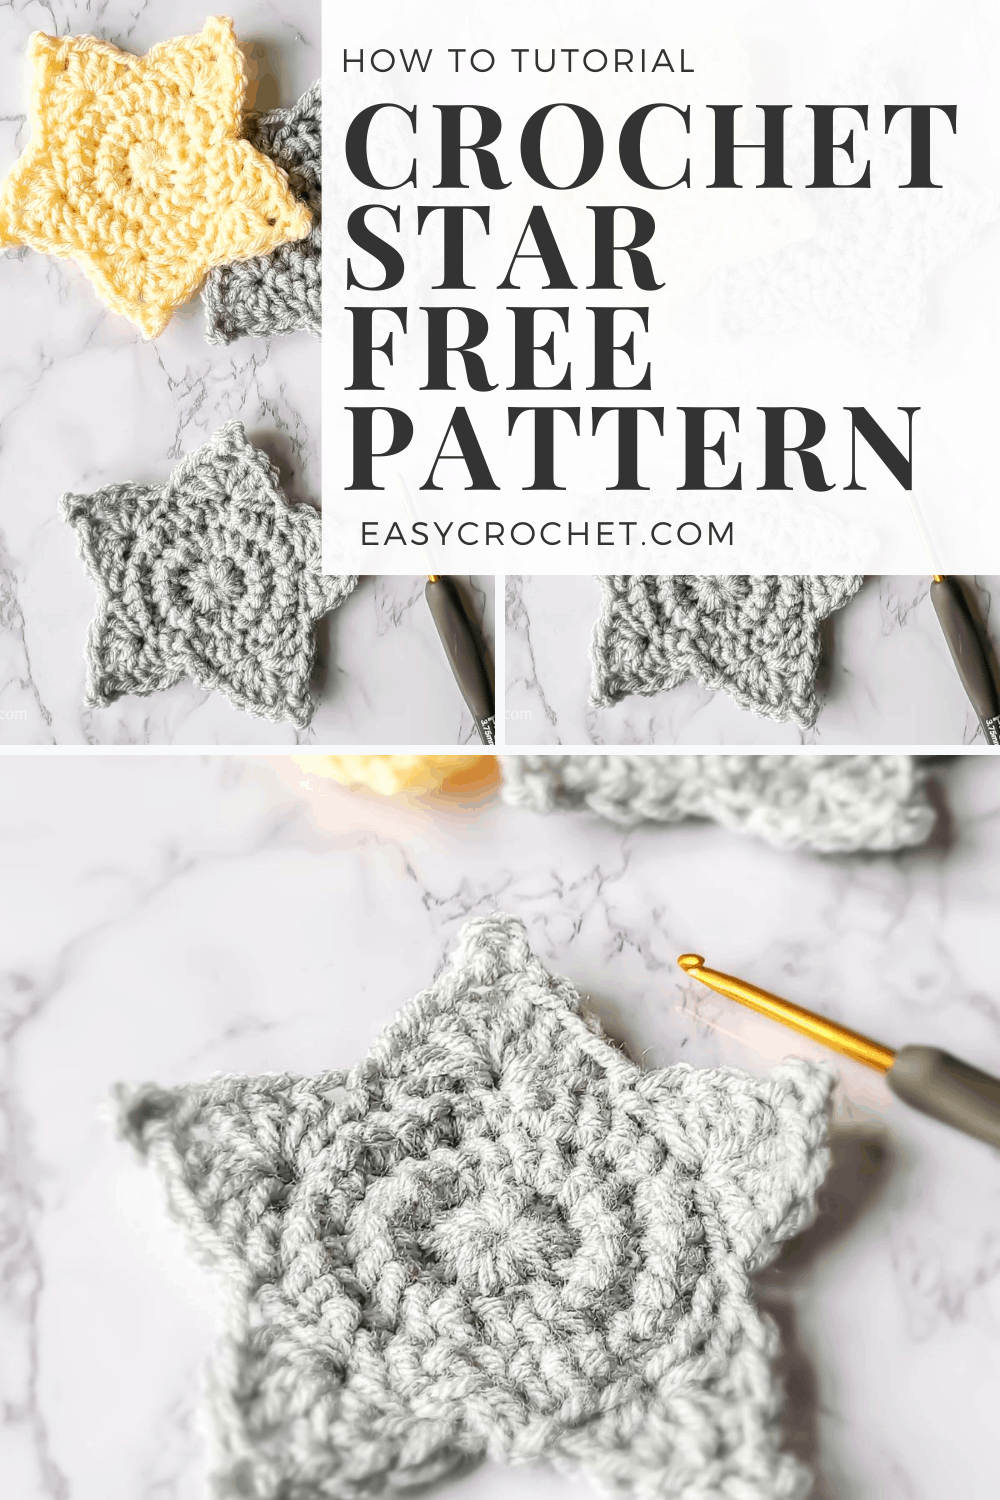 How to crochet a star free pattern